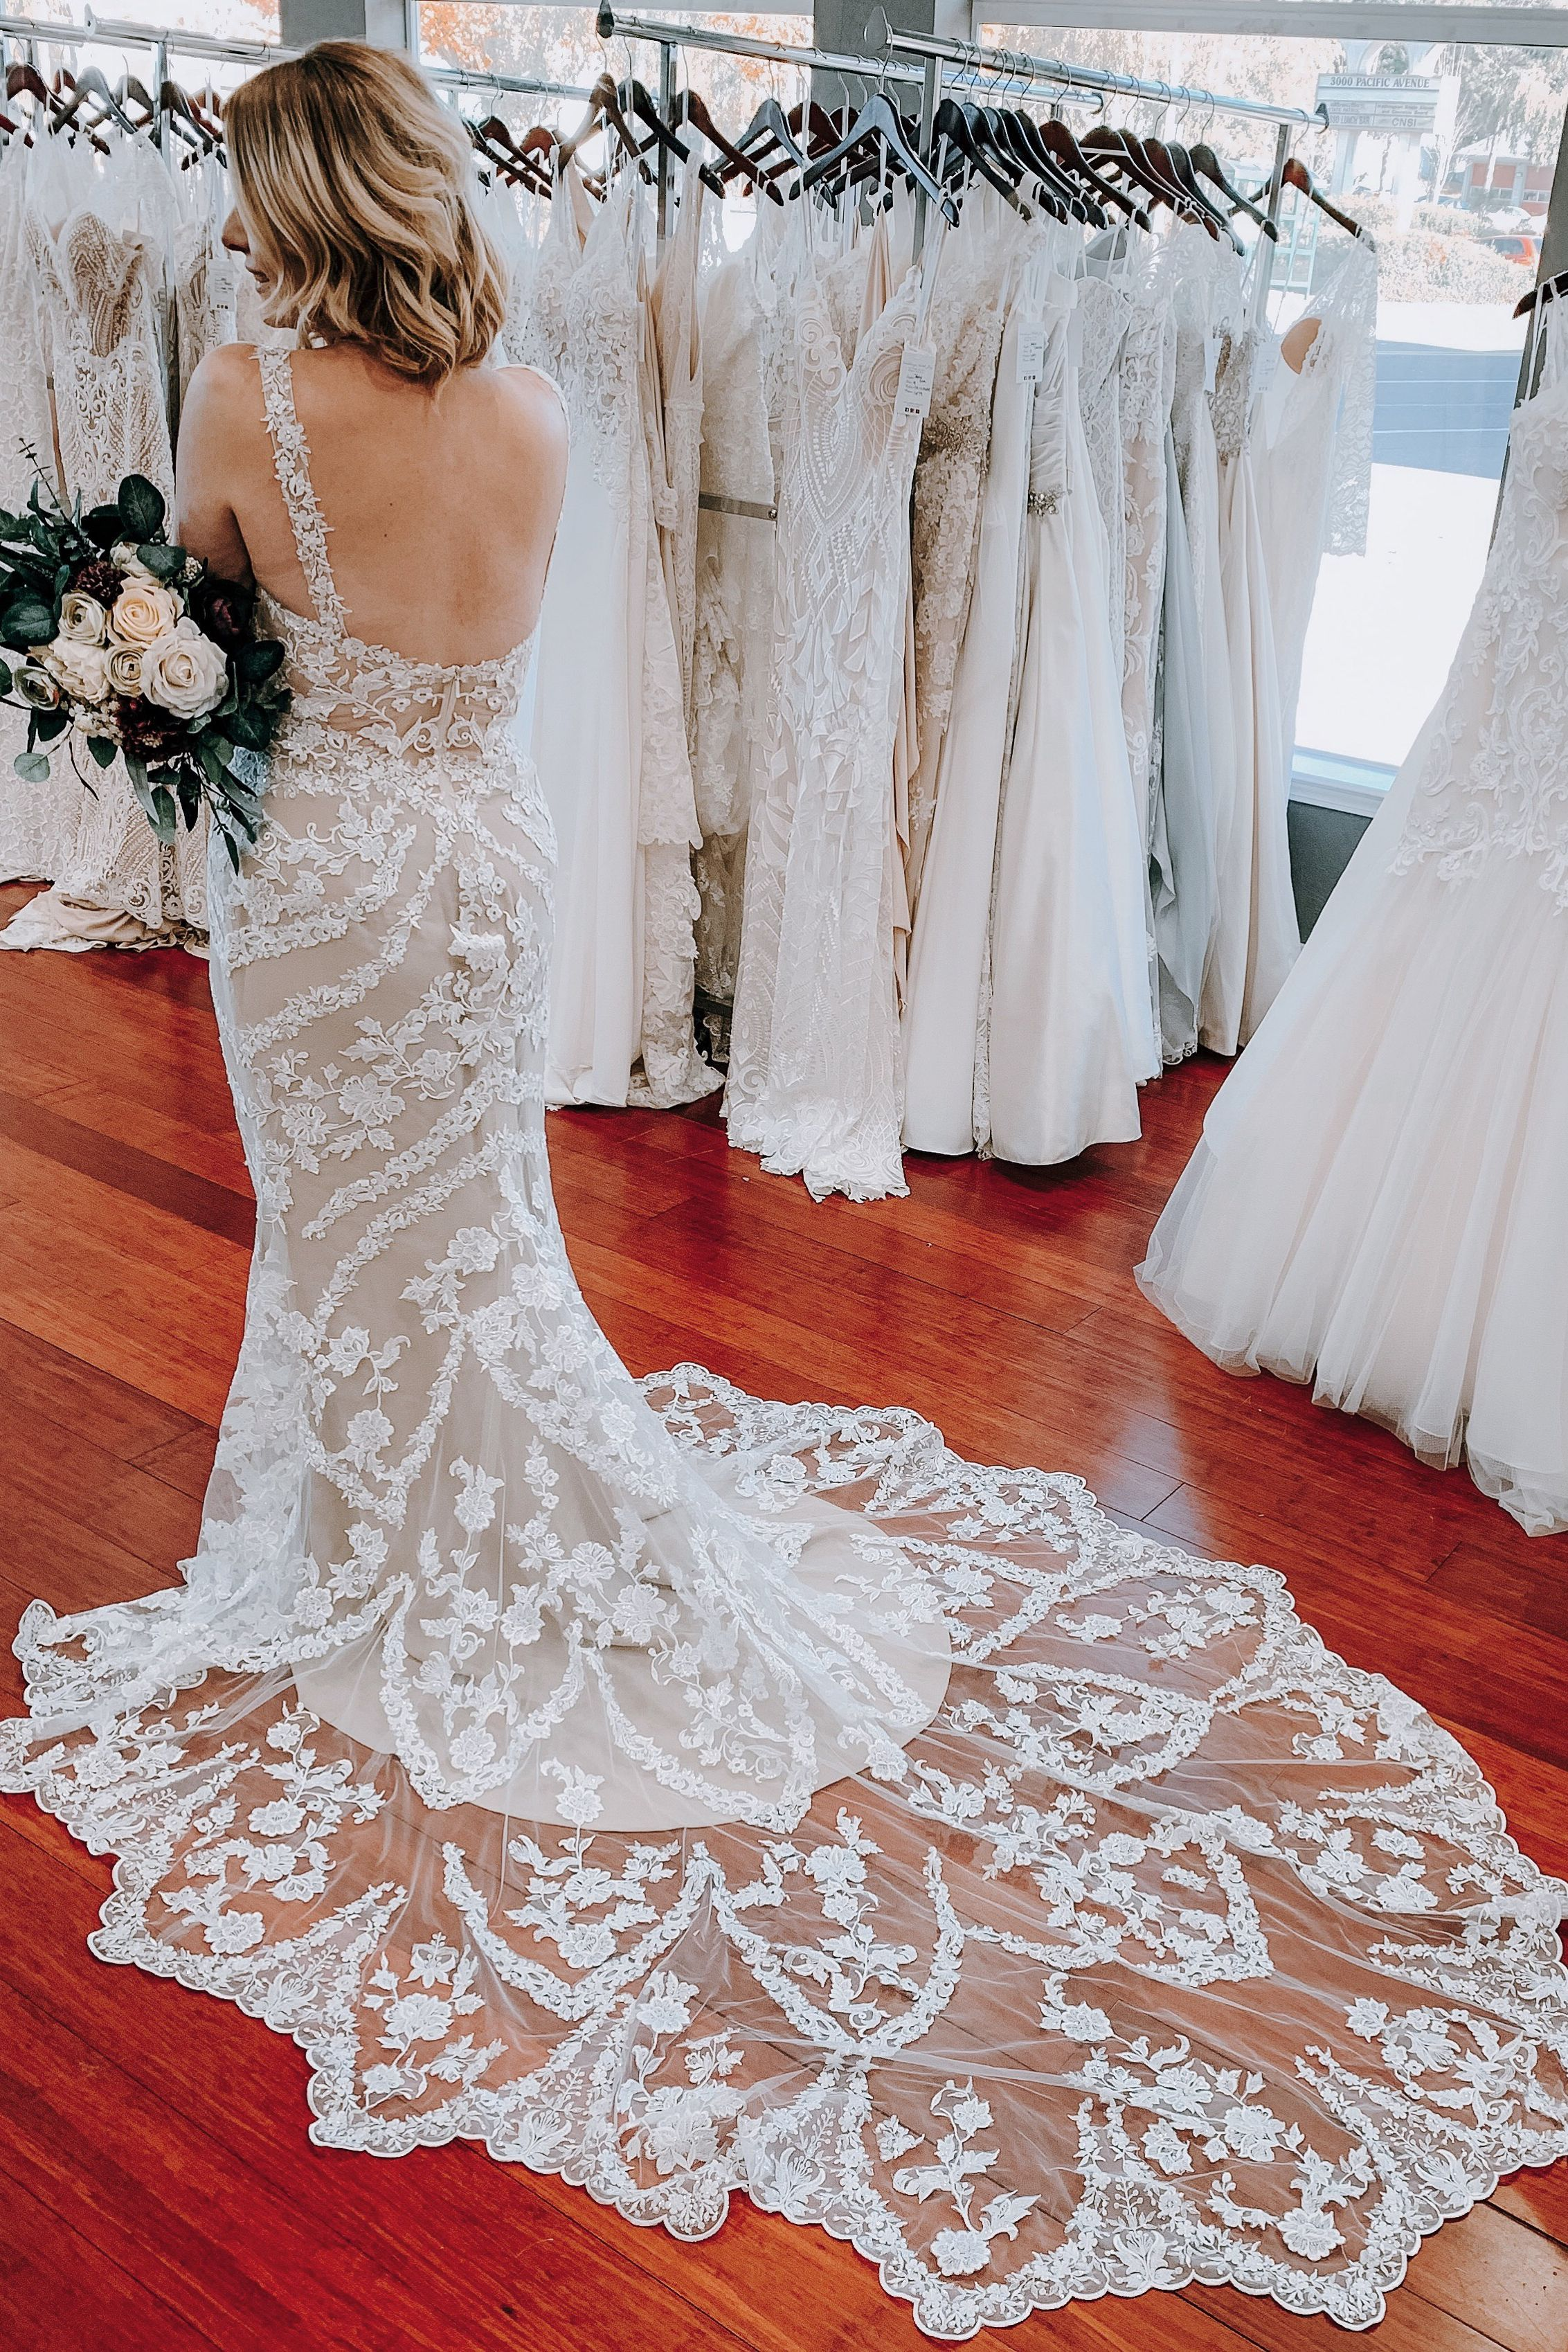 Bohemian Lace Wedding Dress with Long Train from Beloved